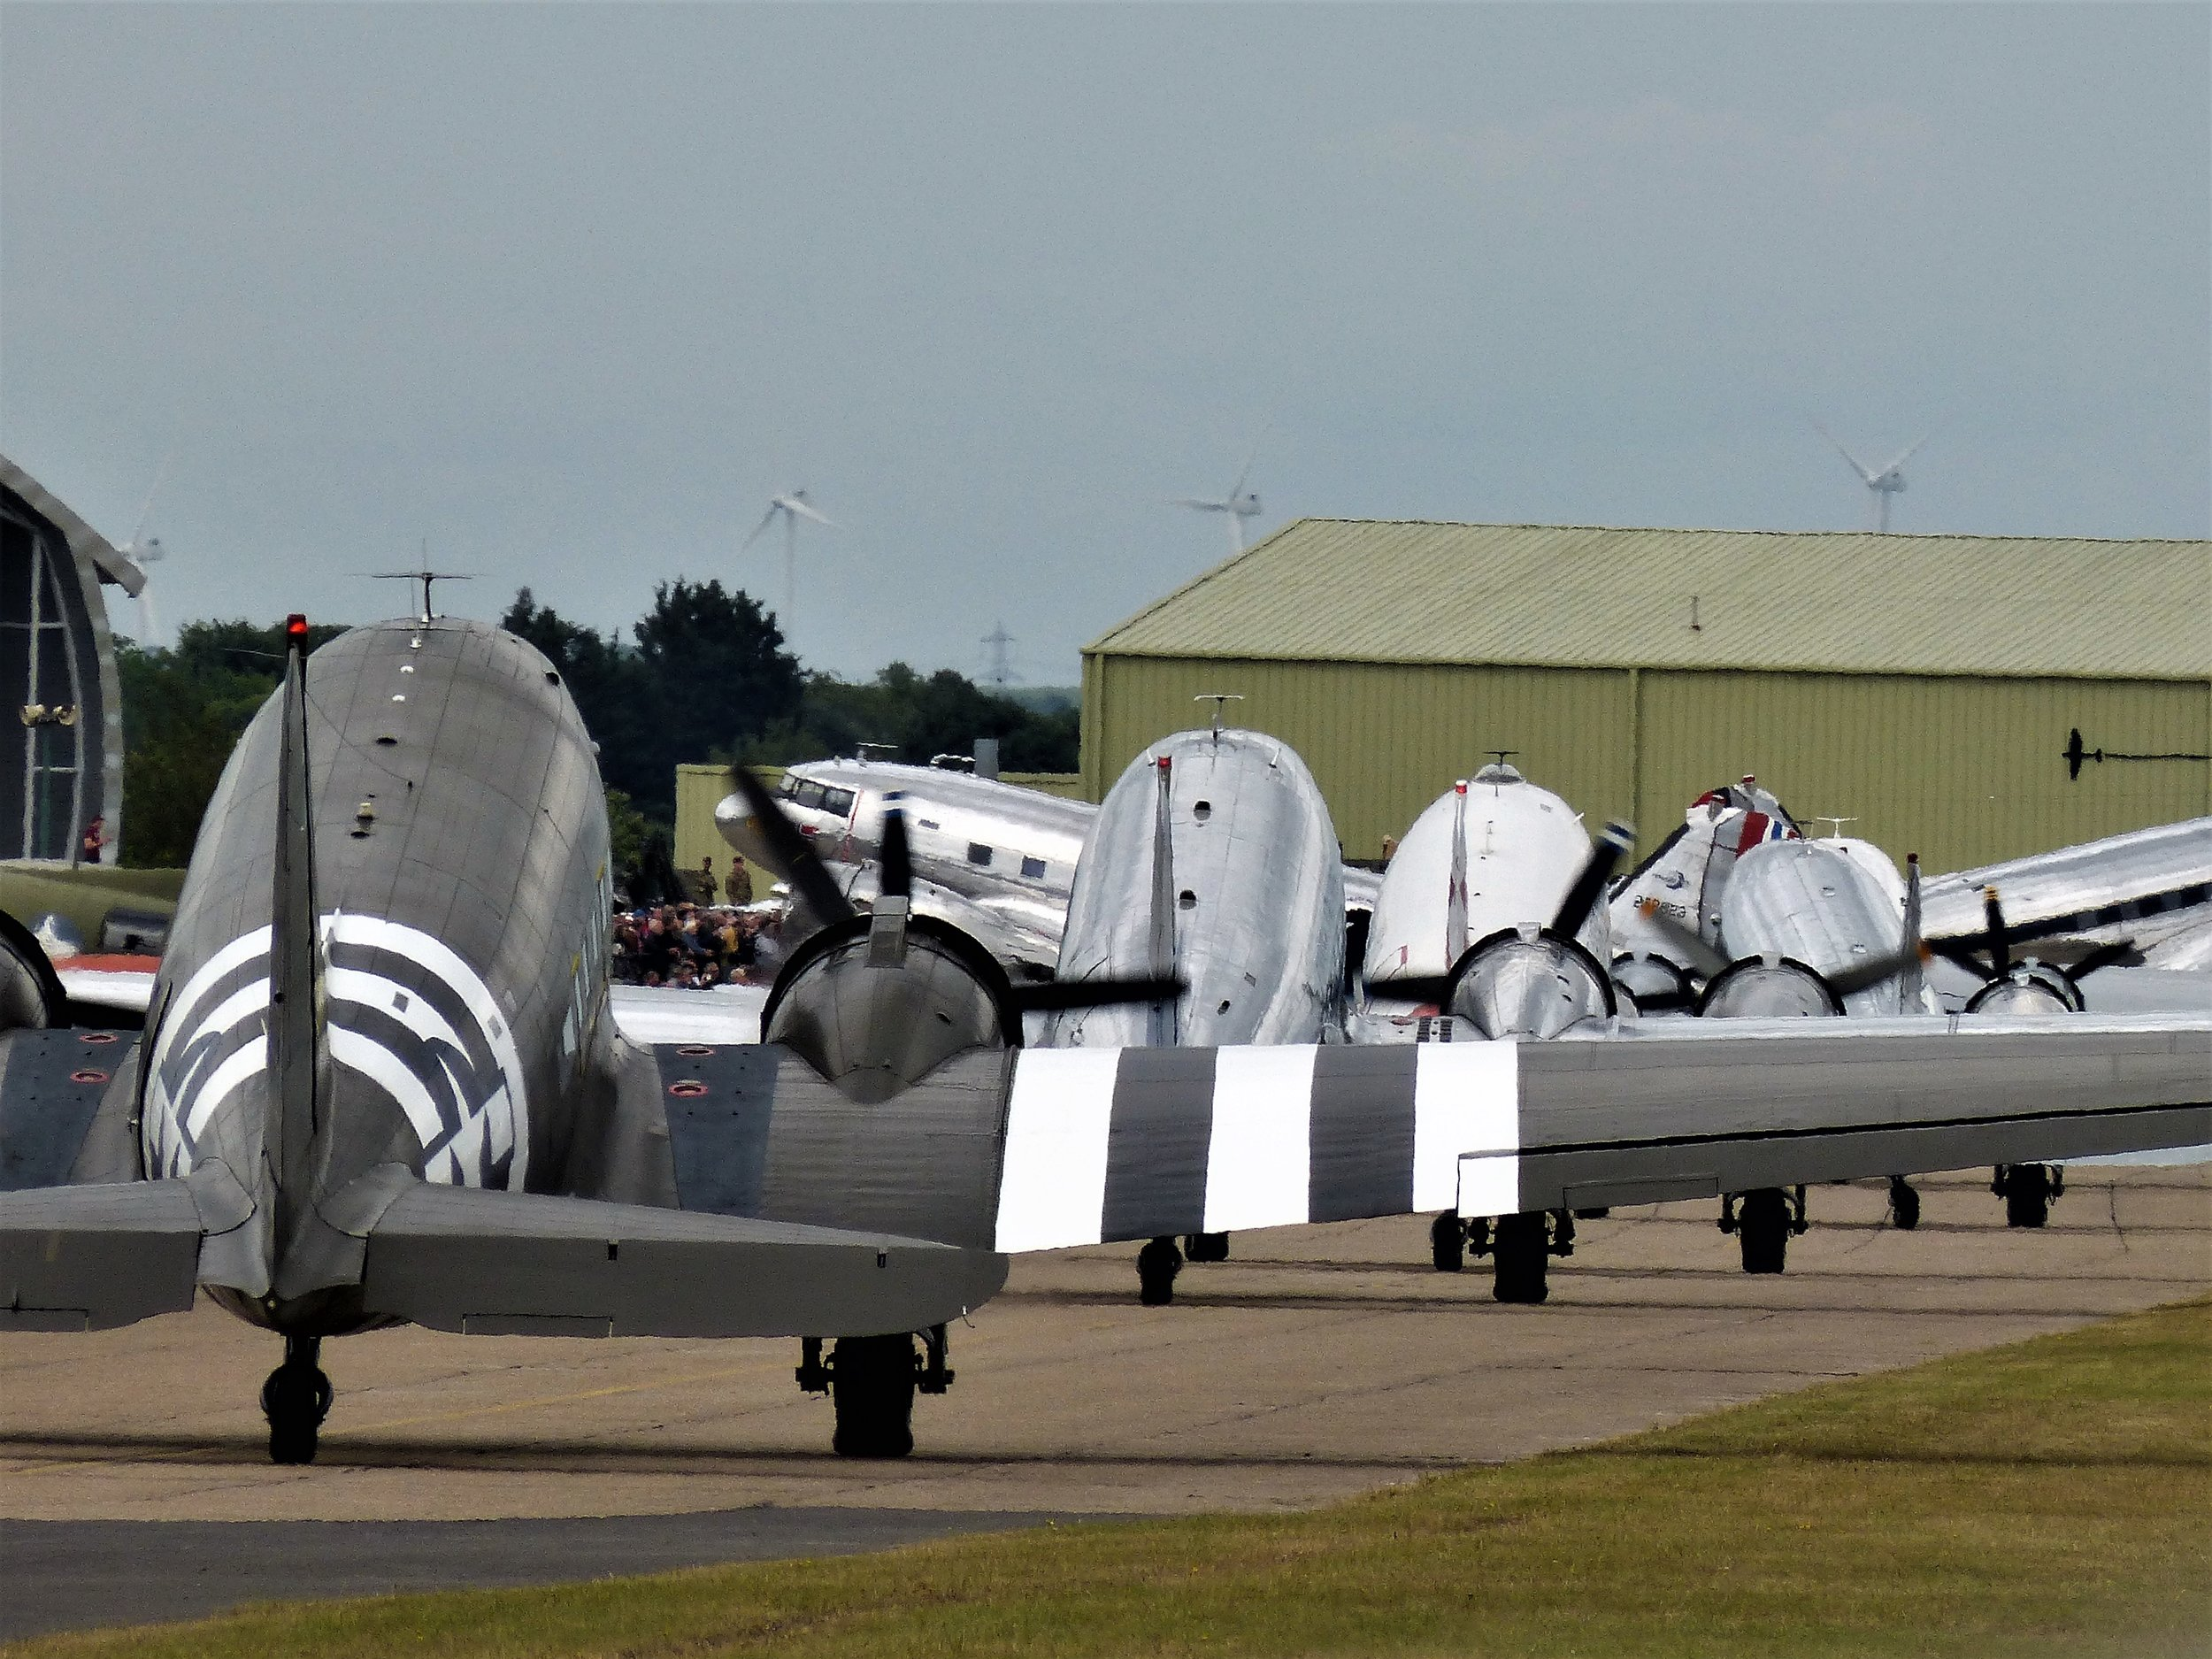 Next stop Normandy….Dakota's taxy for departure from Duxford on 5th June. Photo: Richard Ansell.